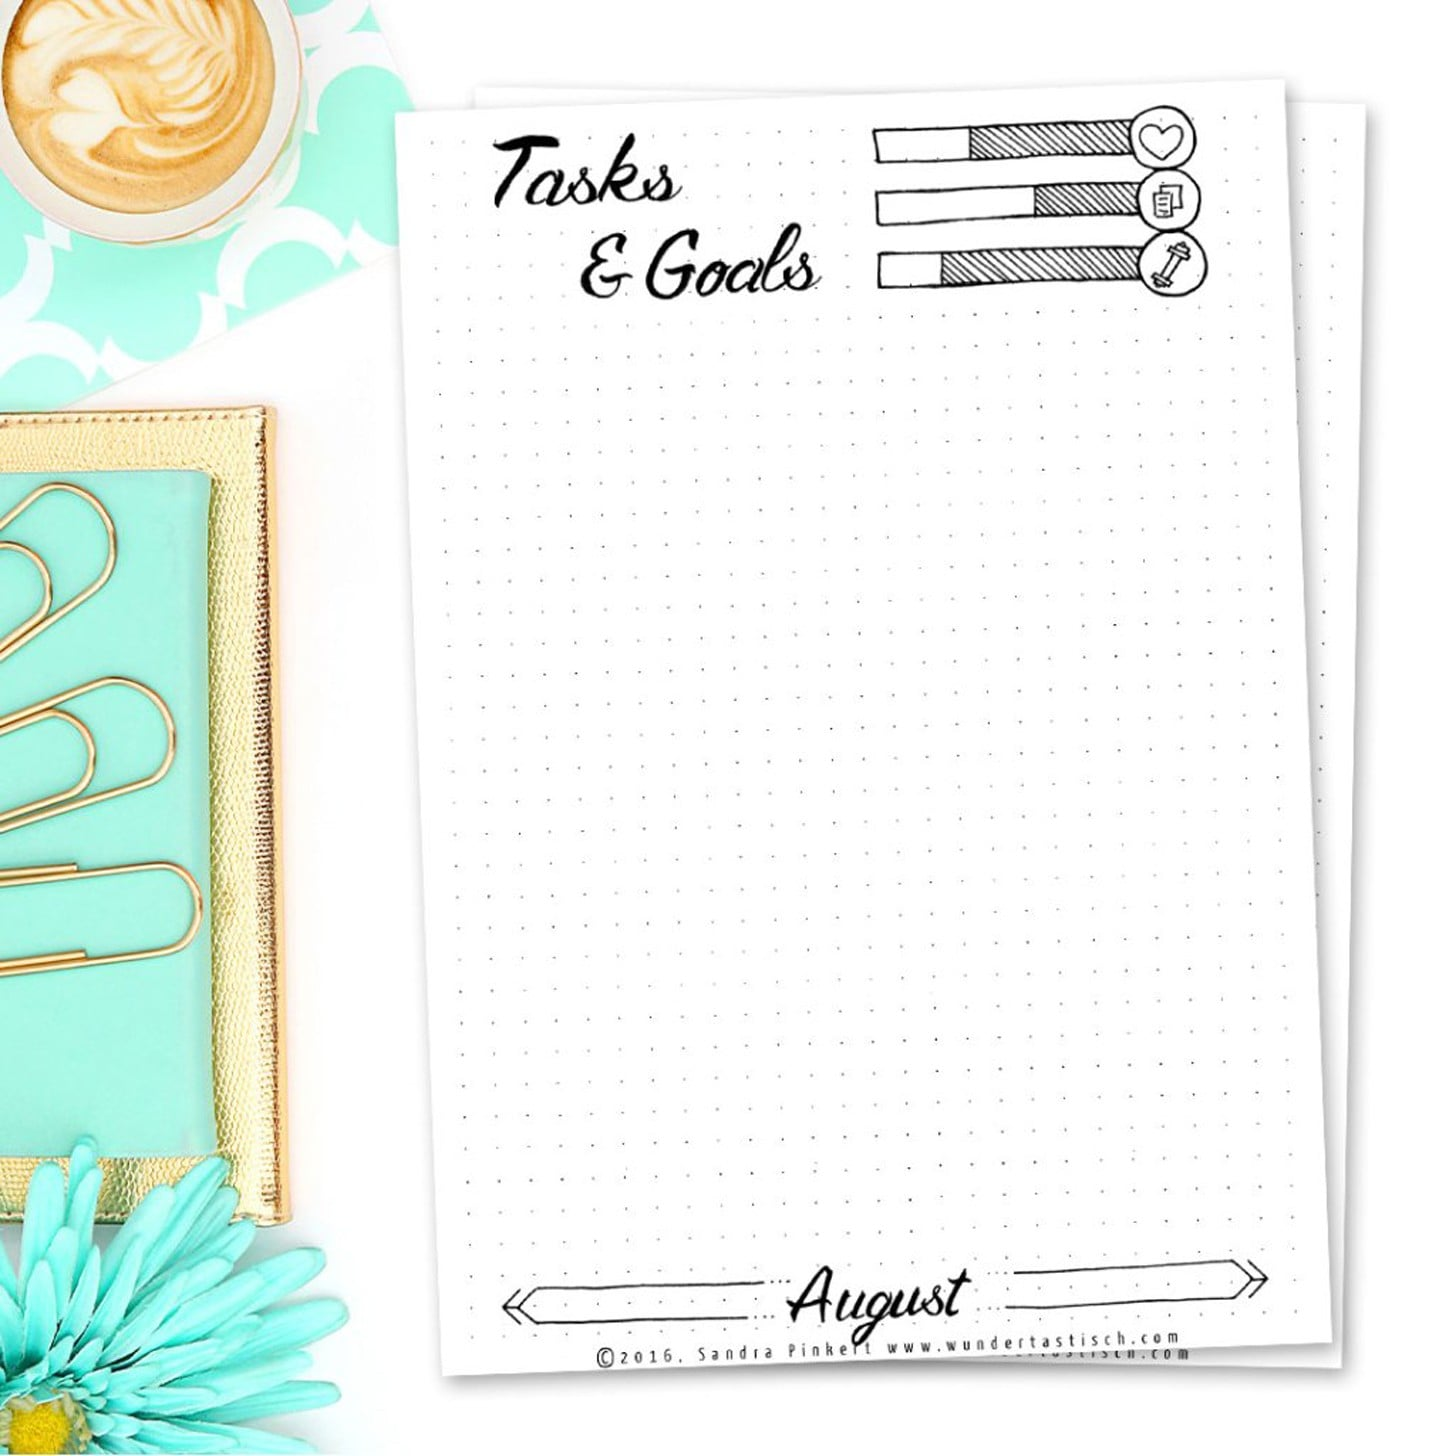 image regarding Free Printable Goal Sheets named Absolutely free Printable Intent Sheets POPSUGAR Clever Residing